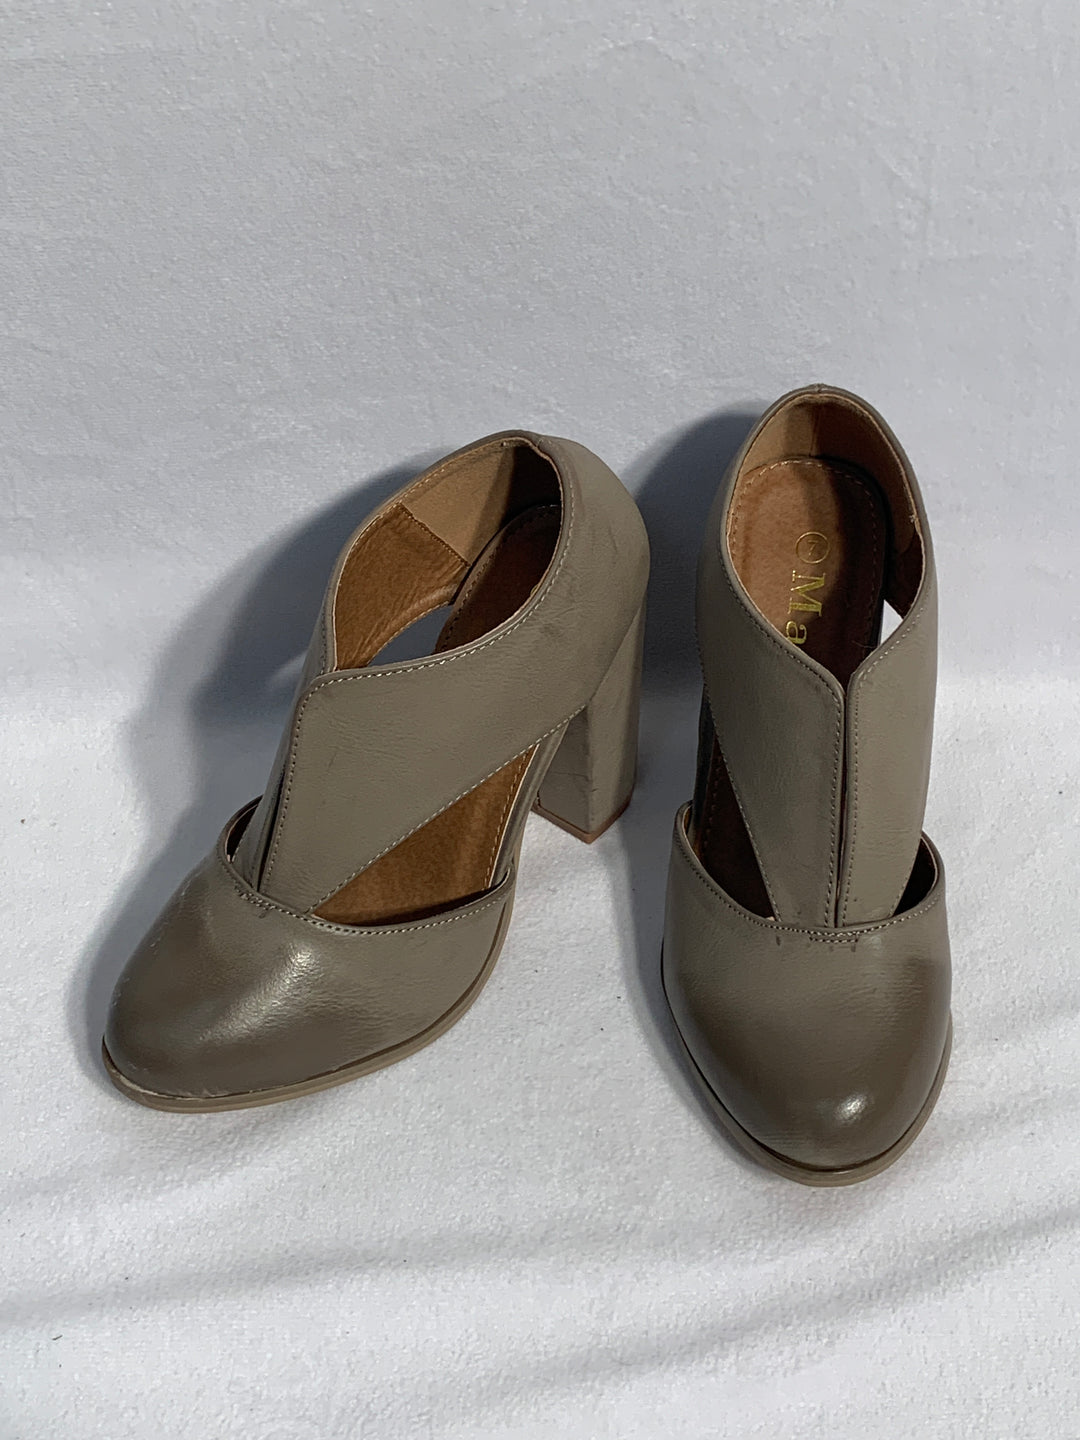 Primary Photo - BRAND: MATA<BR>STYLE: SHOES LOW HEEL<BR>COLOR: BROWN<BR>SIZE: 7<BR>OTHER INFO: MATA -<BR>SKU: 313-31328-26627